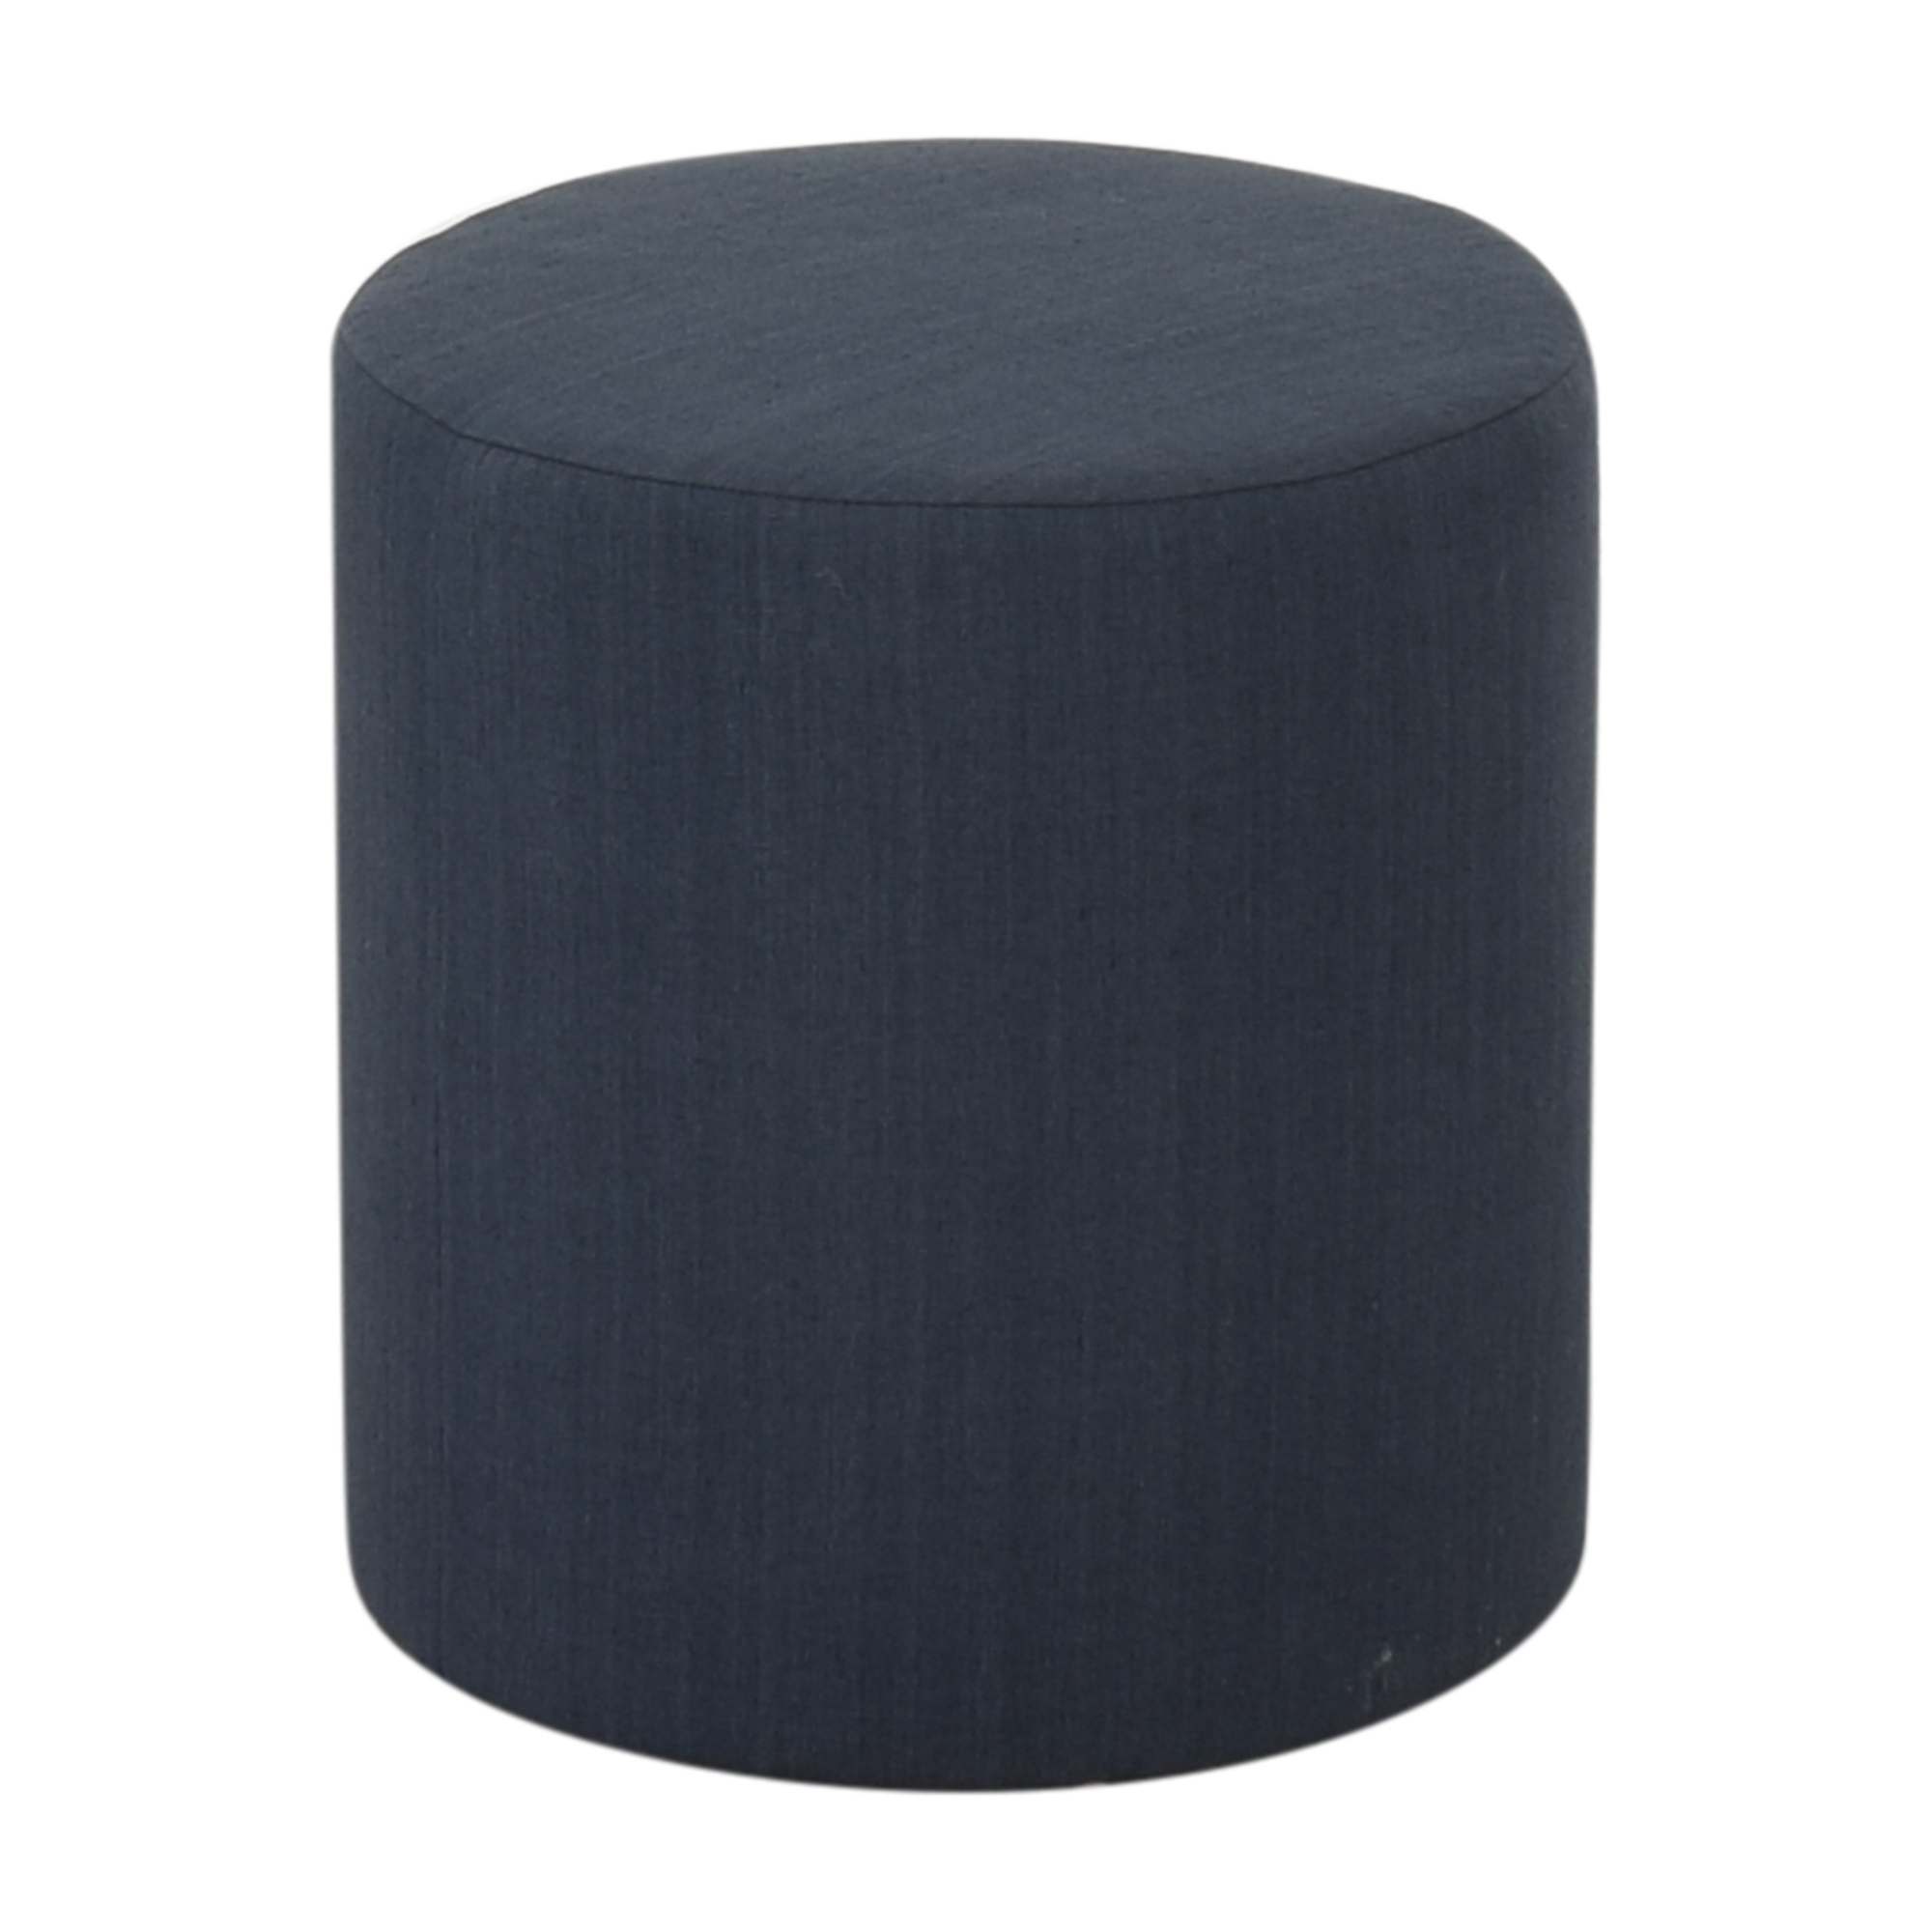 The Inside The Inside Drum Ottoman on sale